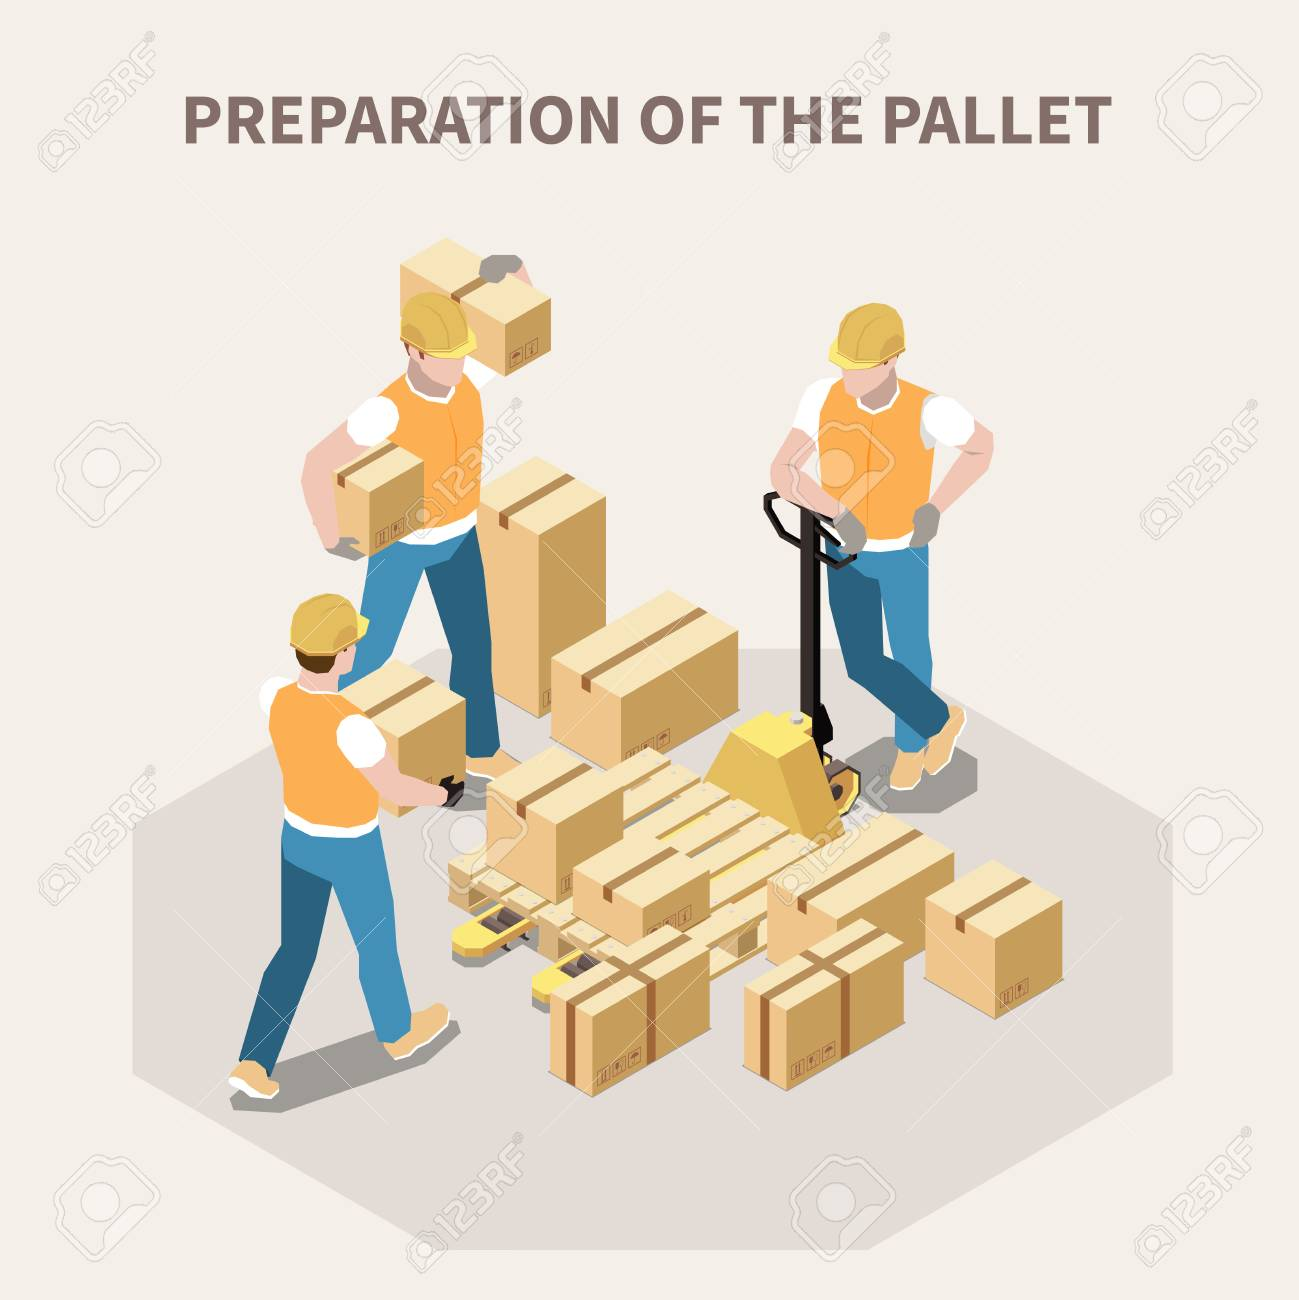 Warehouse workers putting cardboard boxes on wooden pallet 3d isometric vector illustration - 121388858